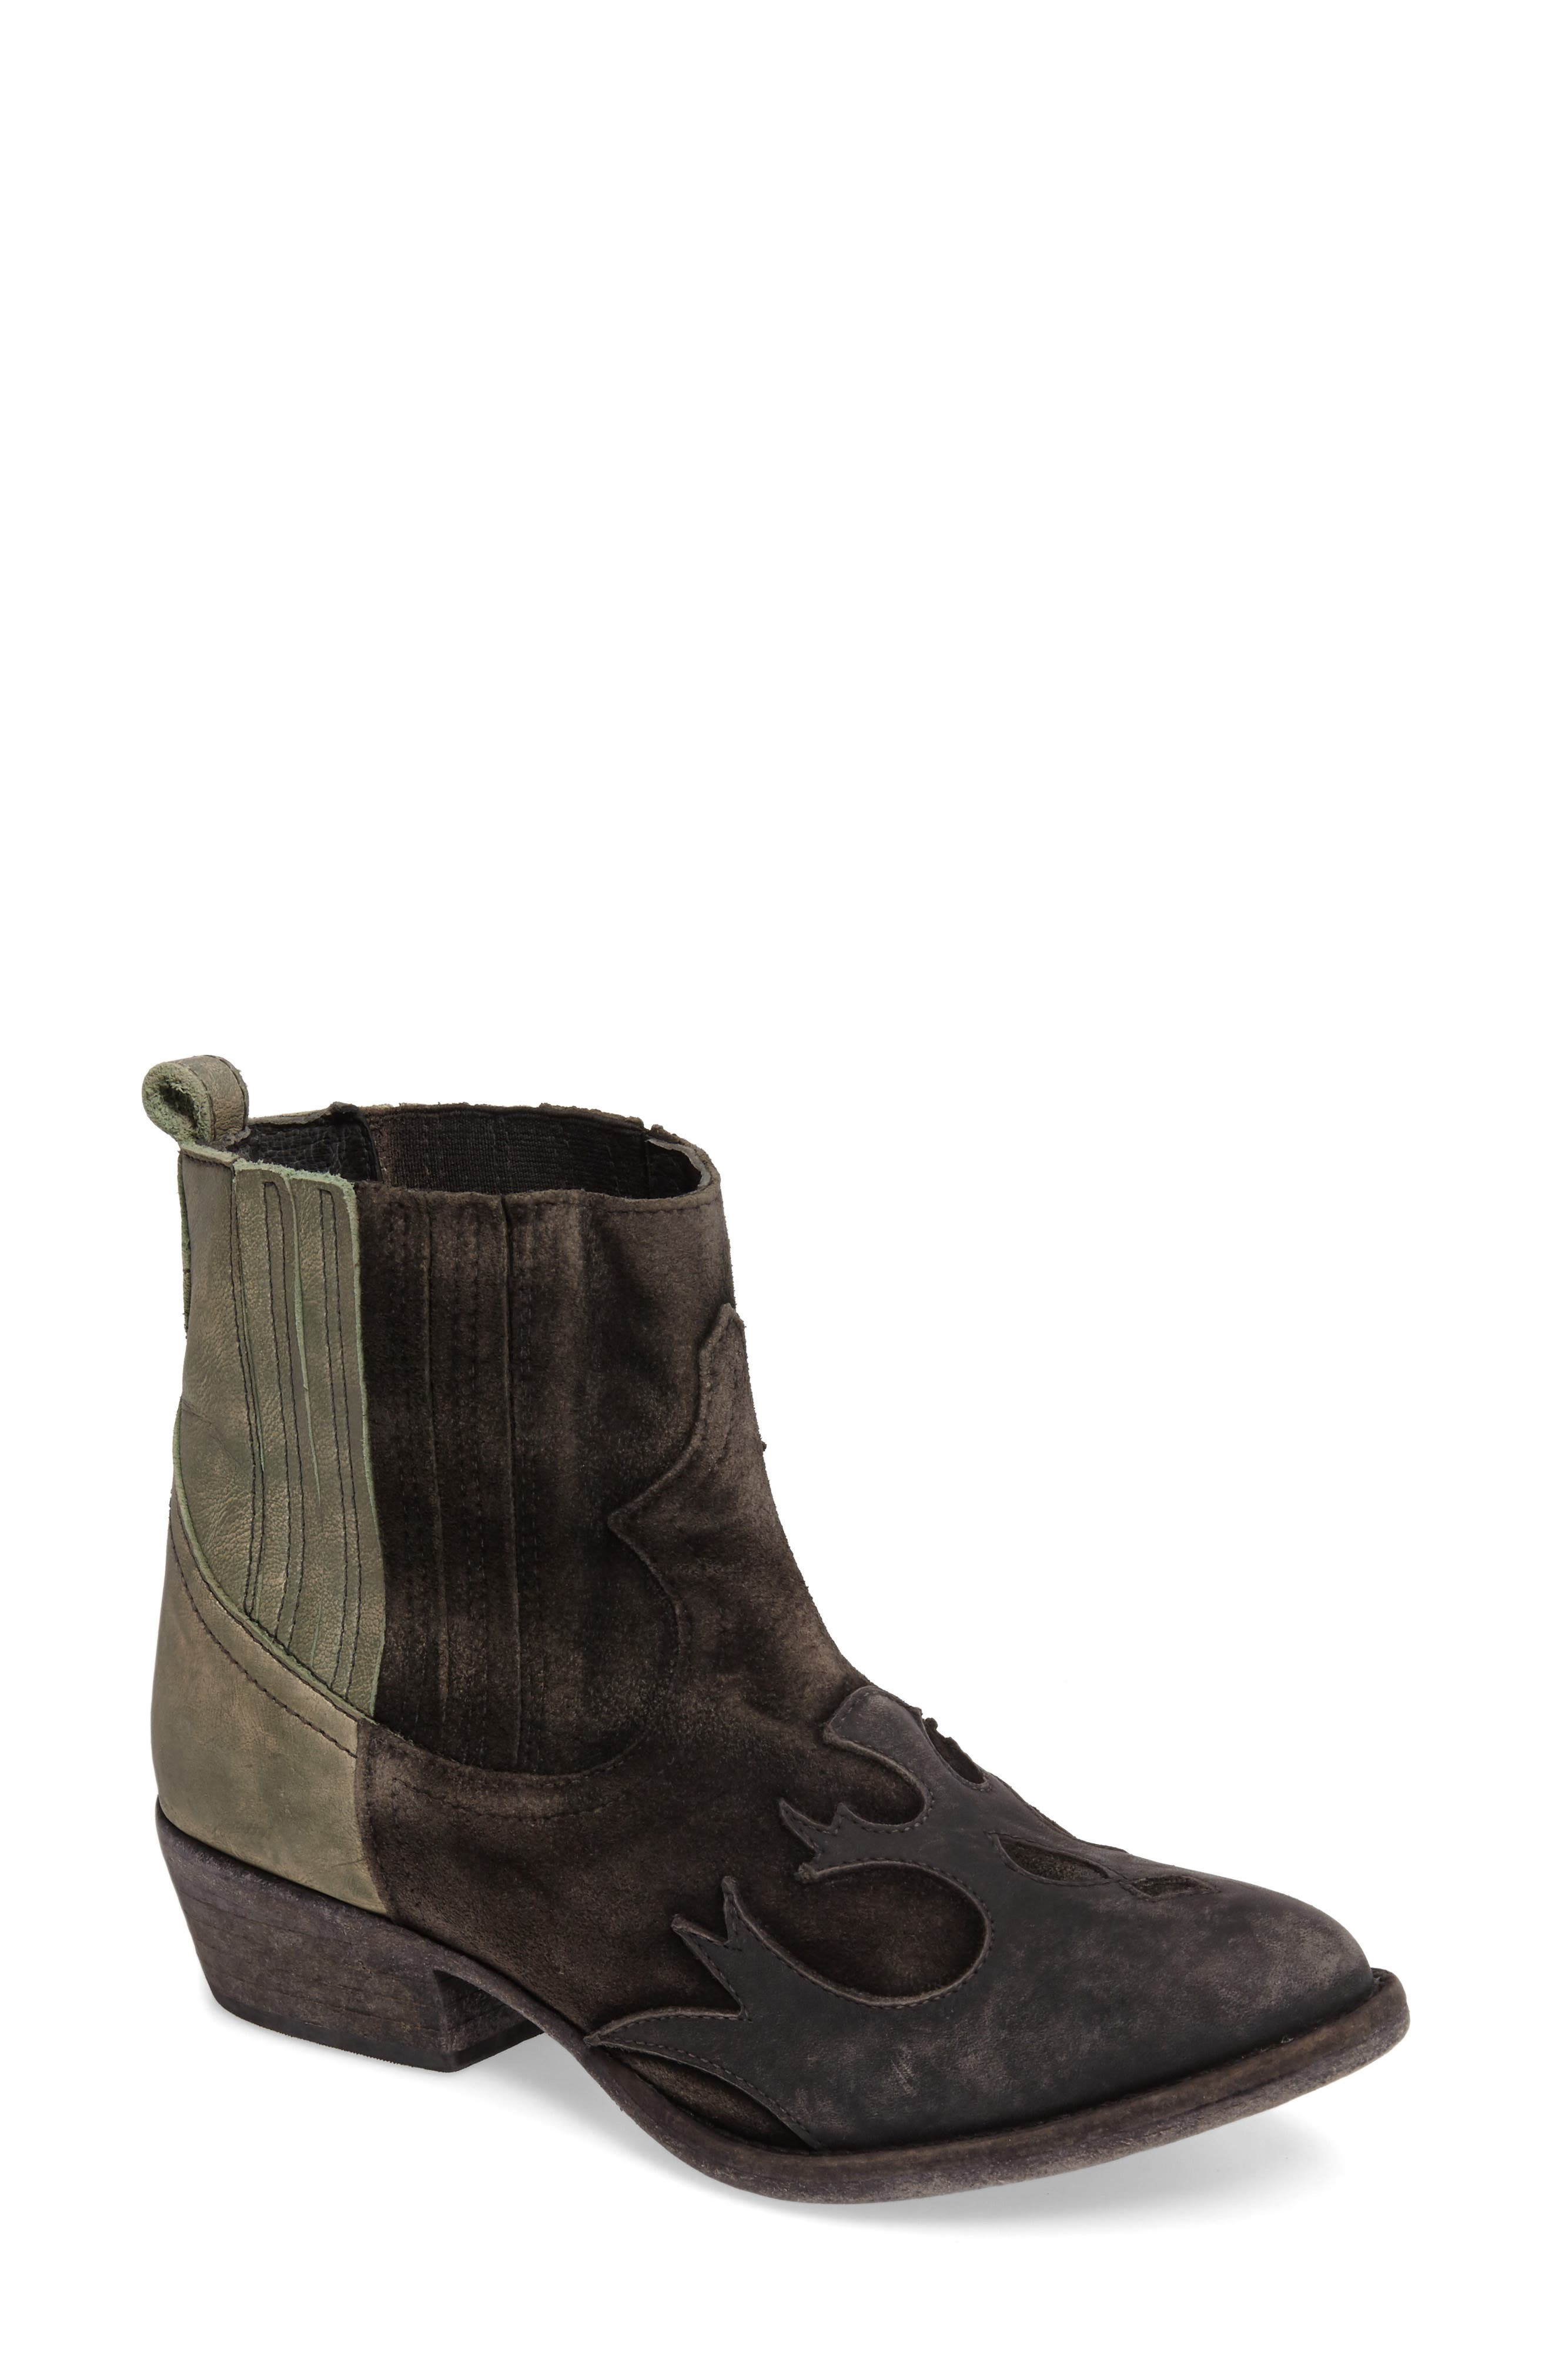 Royston Bootie,                             Main thumbnail 1, color,                             Black Leather